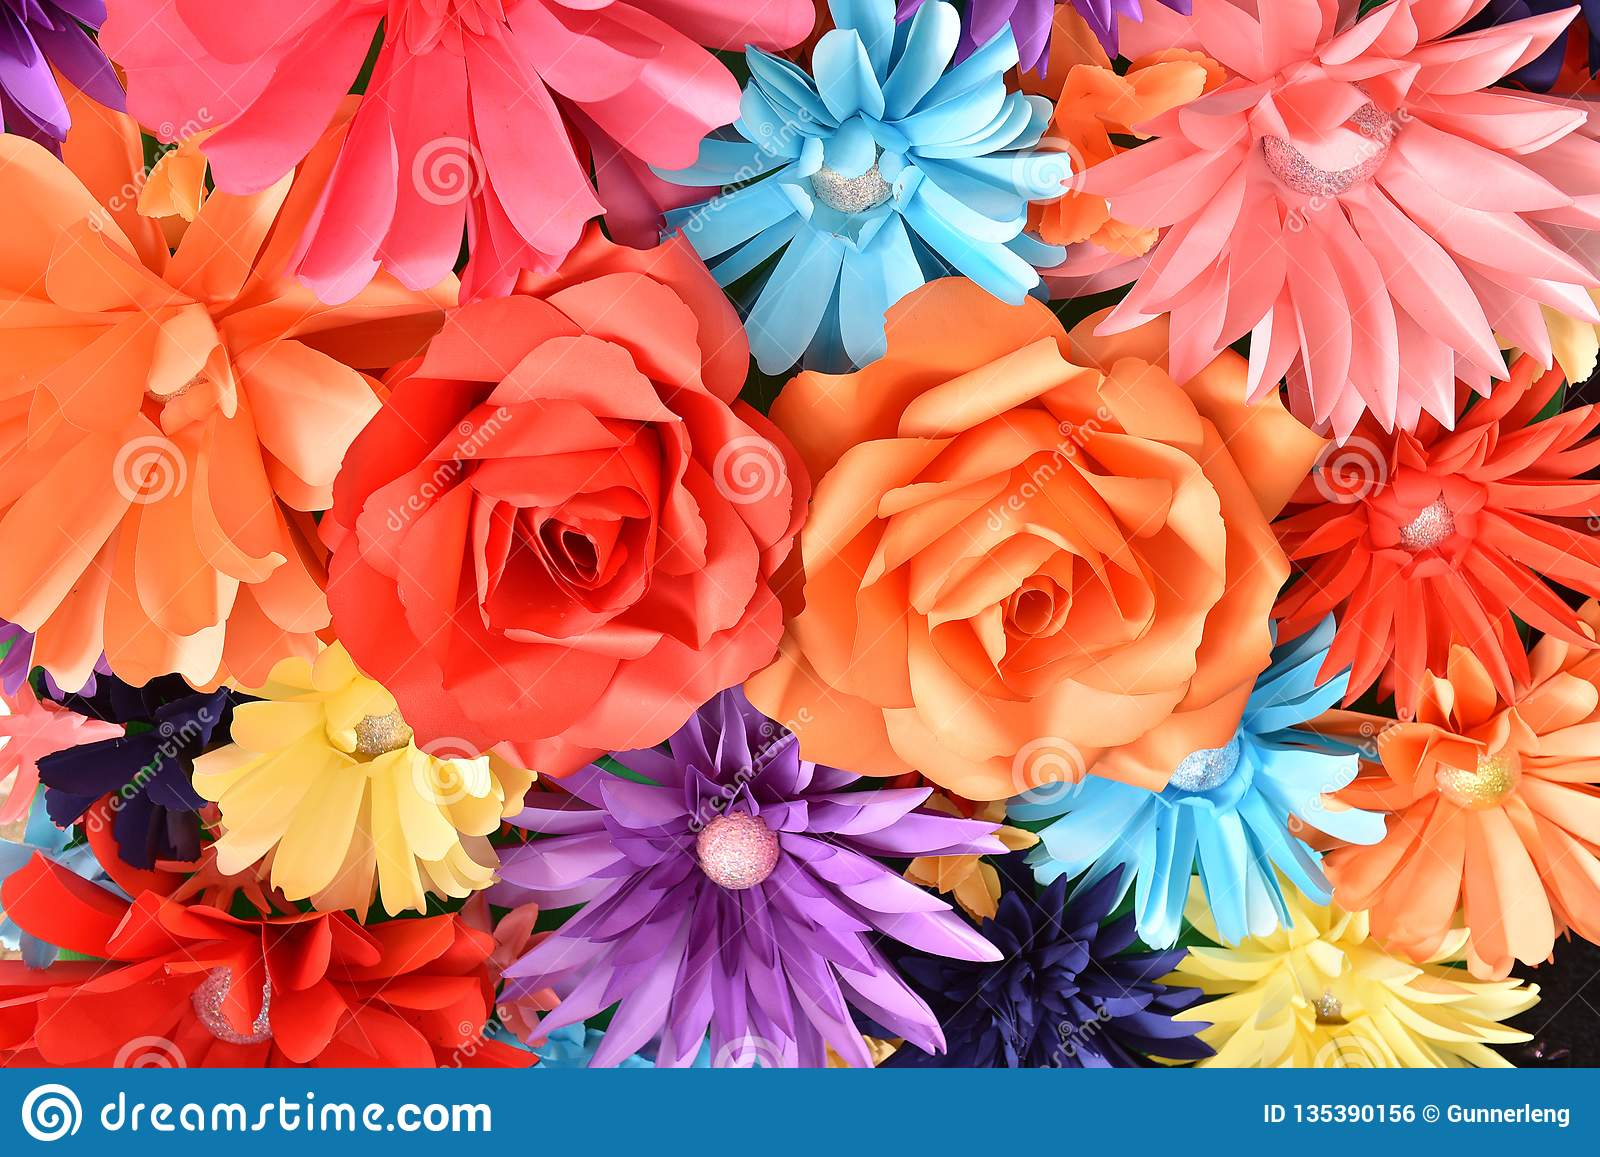 https www dreamstime com colorful flowers background texture many beautiful handmade paper flowers design love concept valentine wedding image135390156